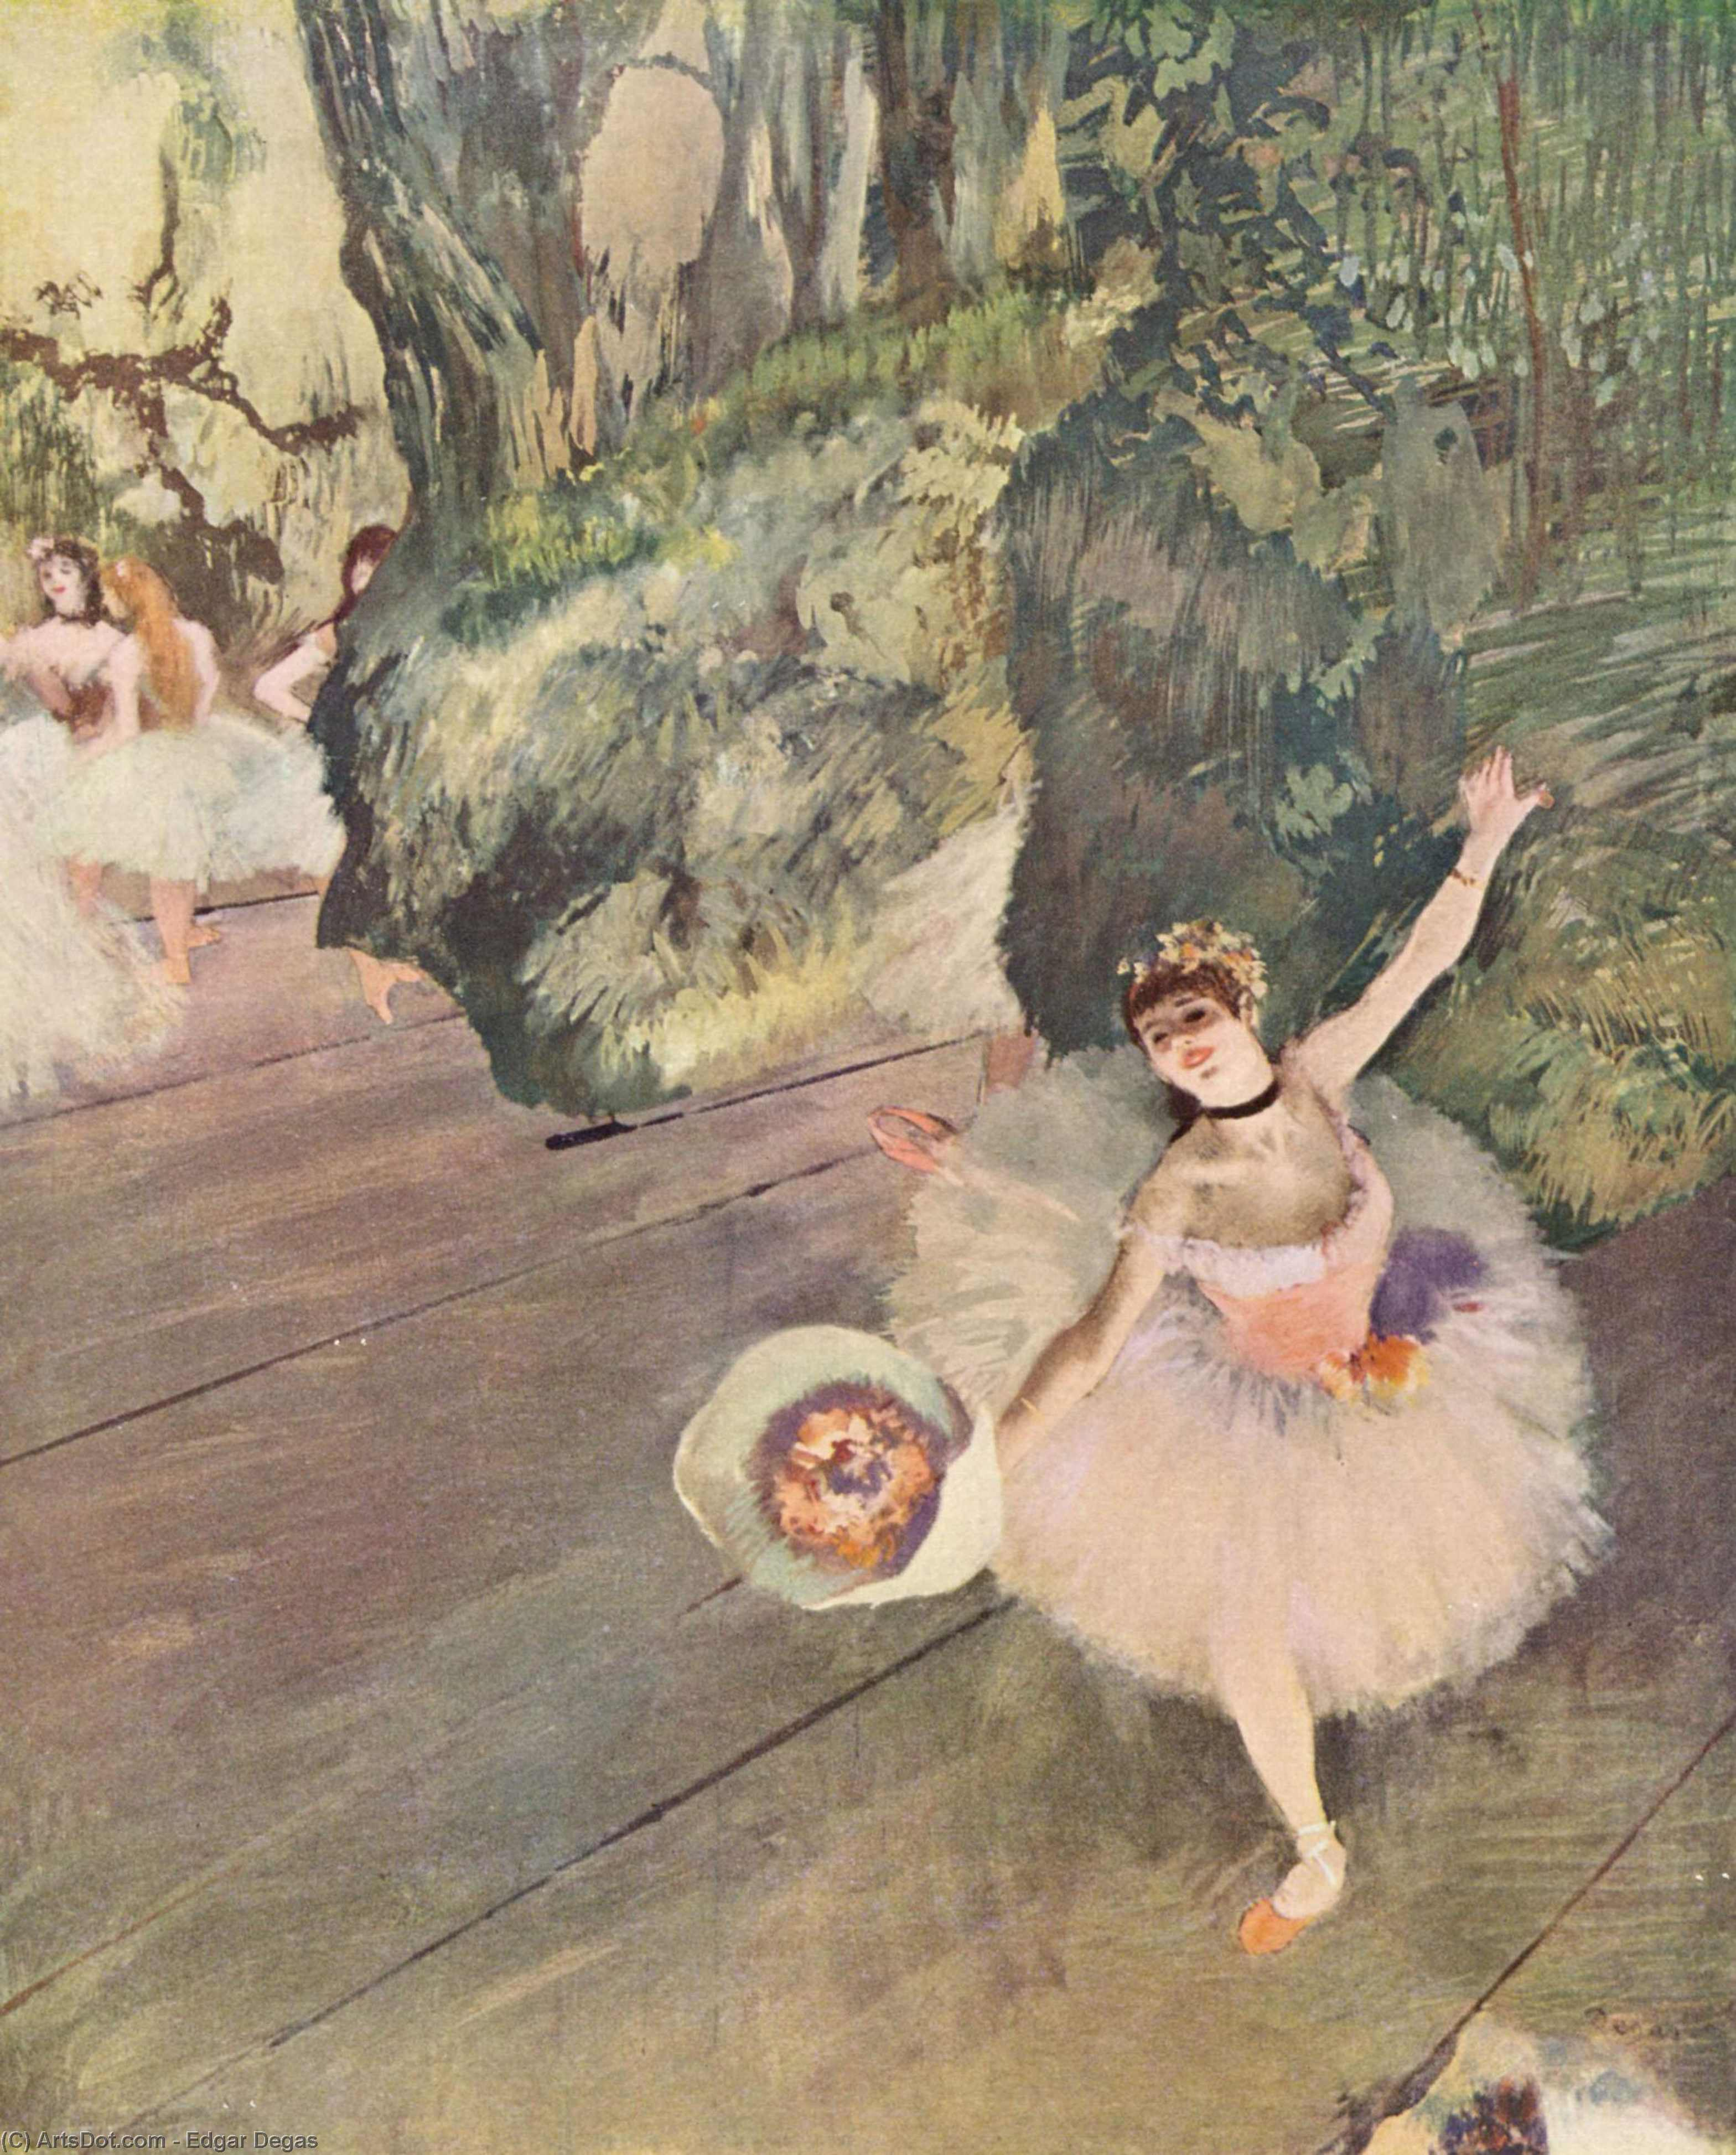 Wikioo.org - The Encyclopedia of Fine Arts - Painting, Artwork by Edgar Degas - Dancer with a bouquet of flowers (The Star of the ballet)